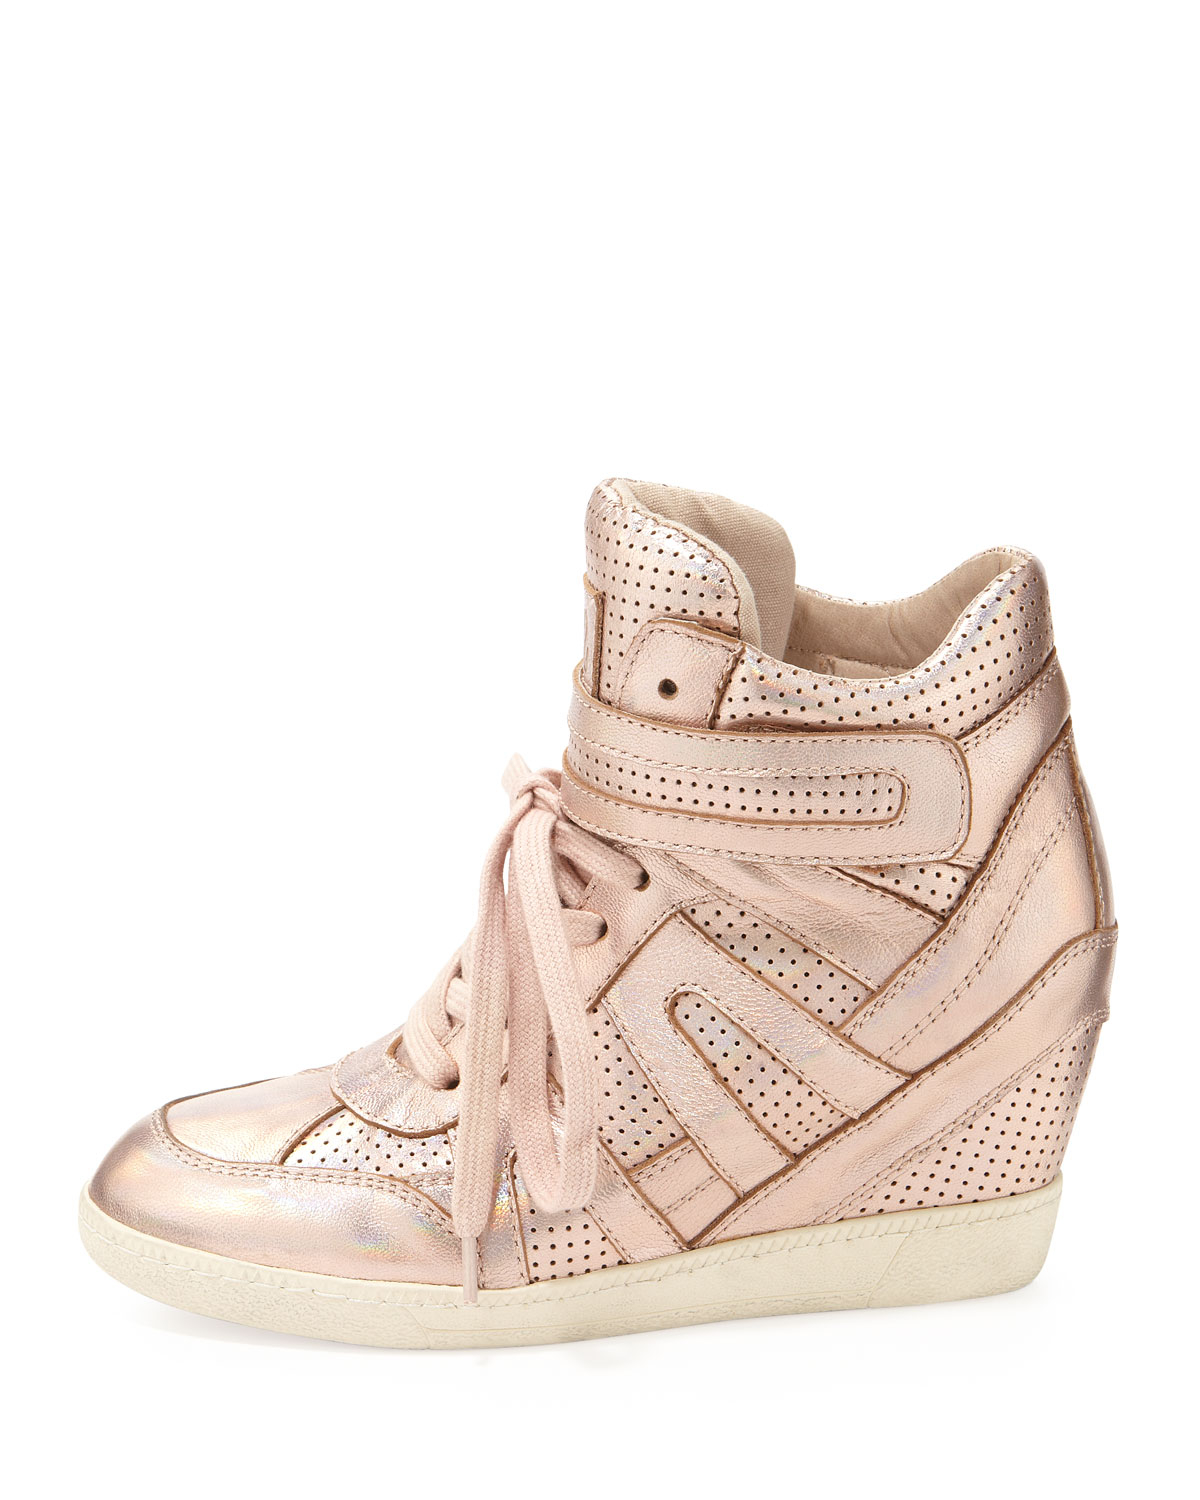 lyst ash beck metallic wedge sneaker rose gold in metallic. Black Bedroom Furniture Sets. Home Design Ideas